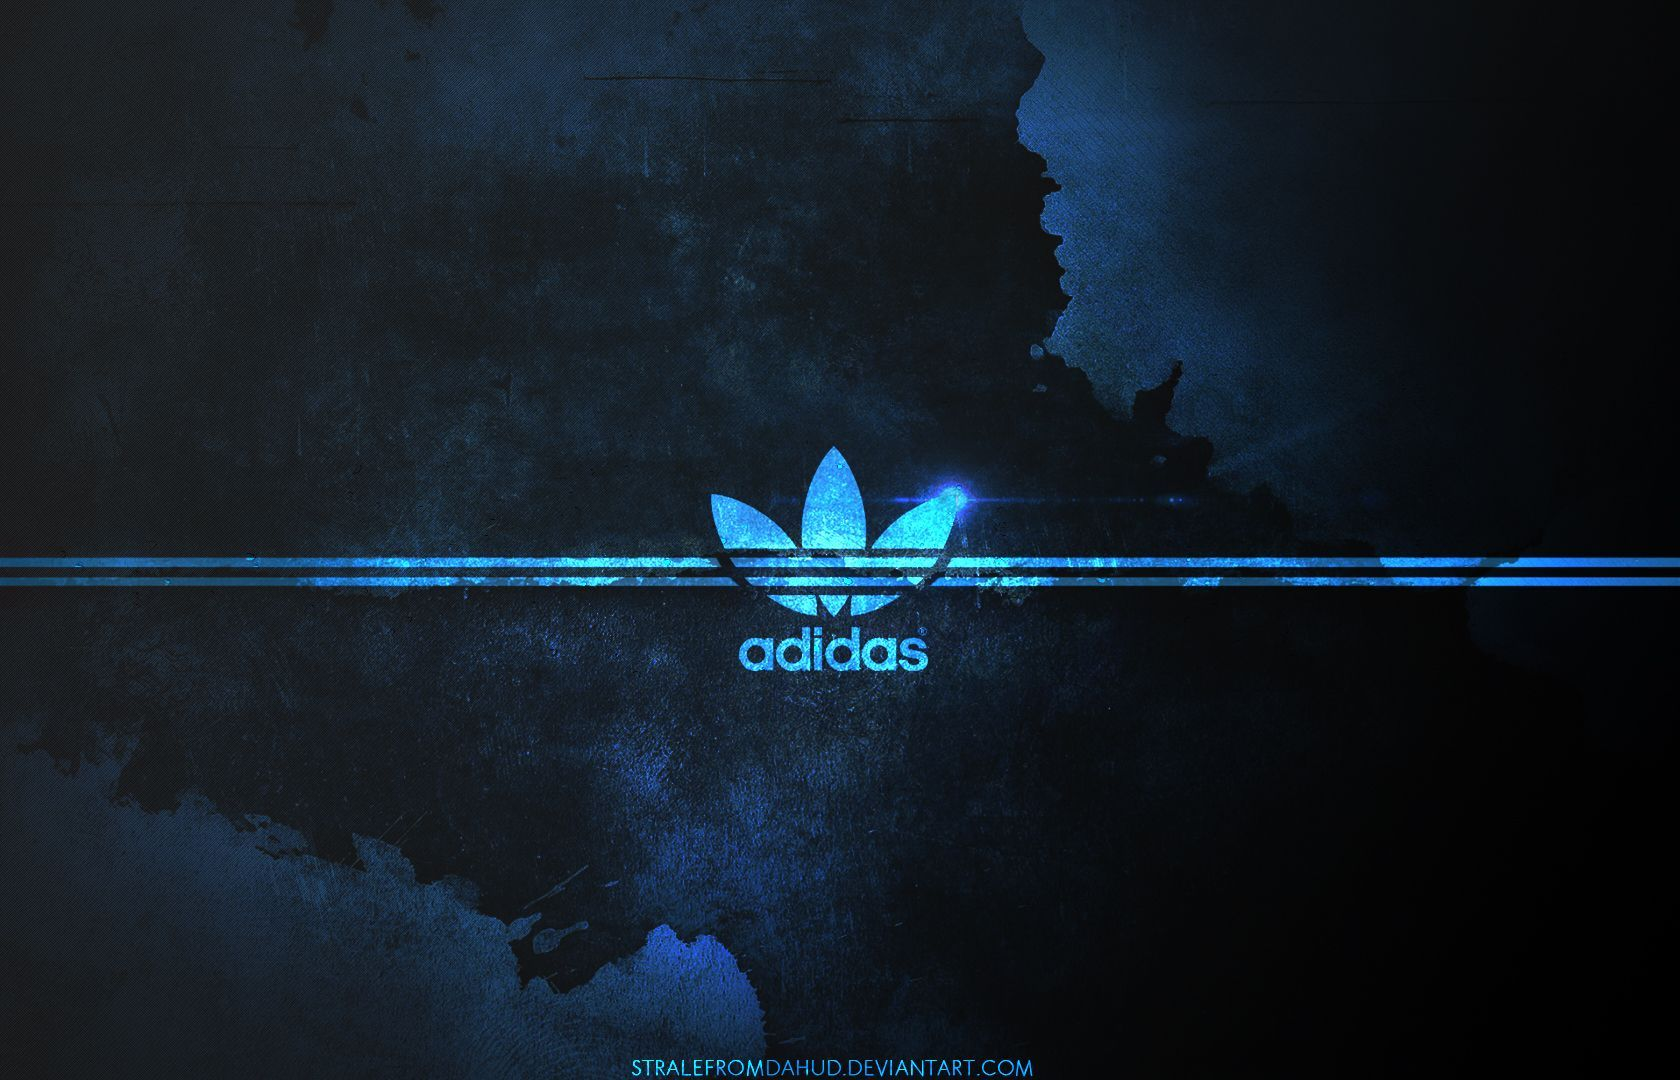 1680x1080 Adidas Wallpapers Neon